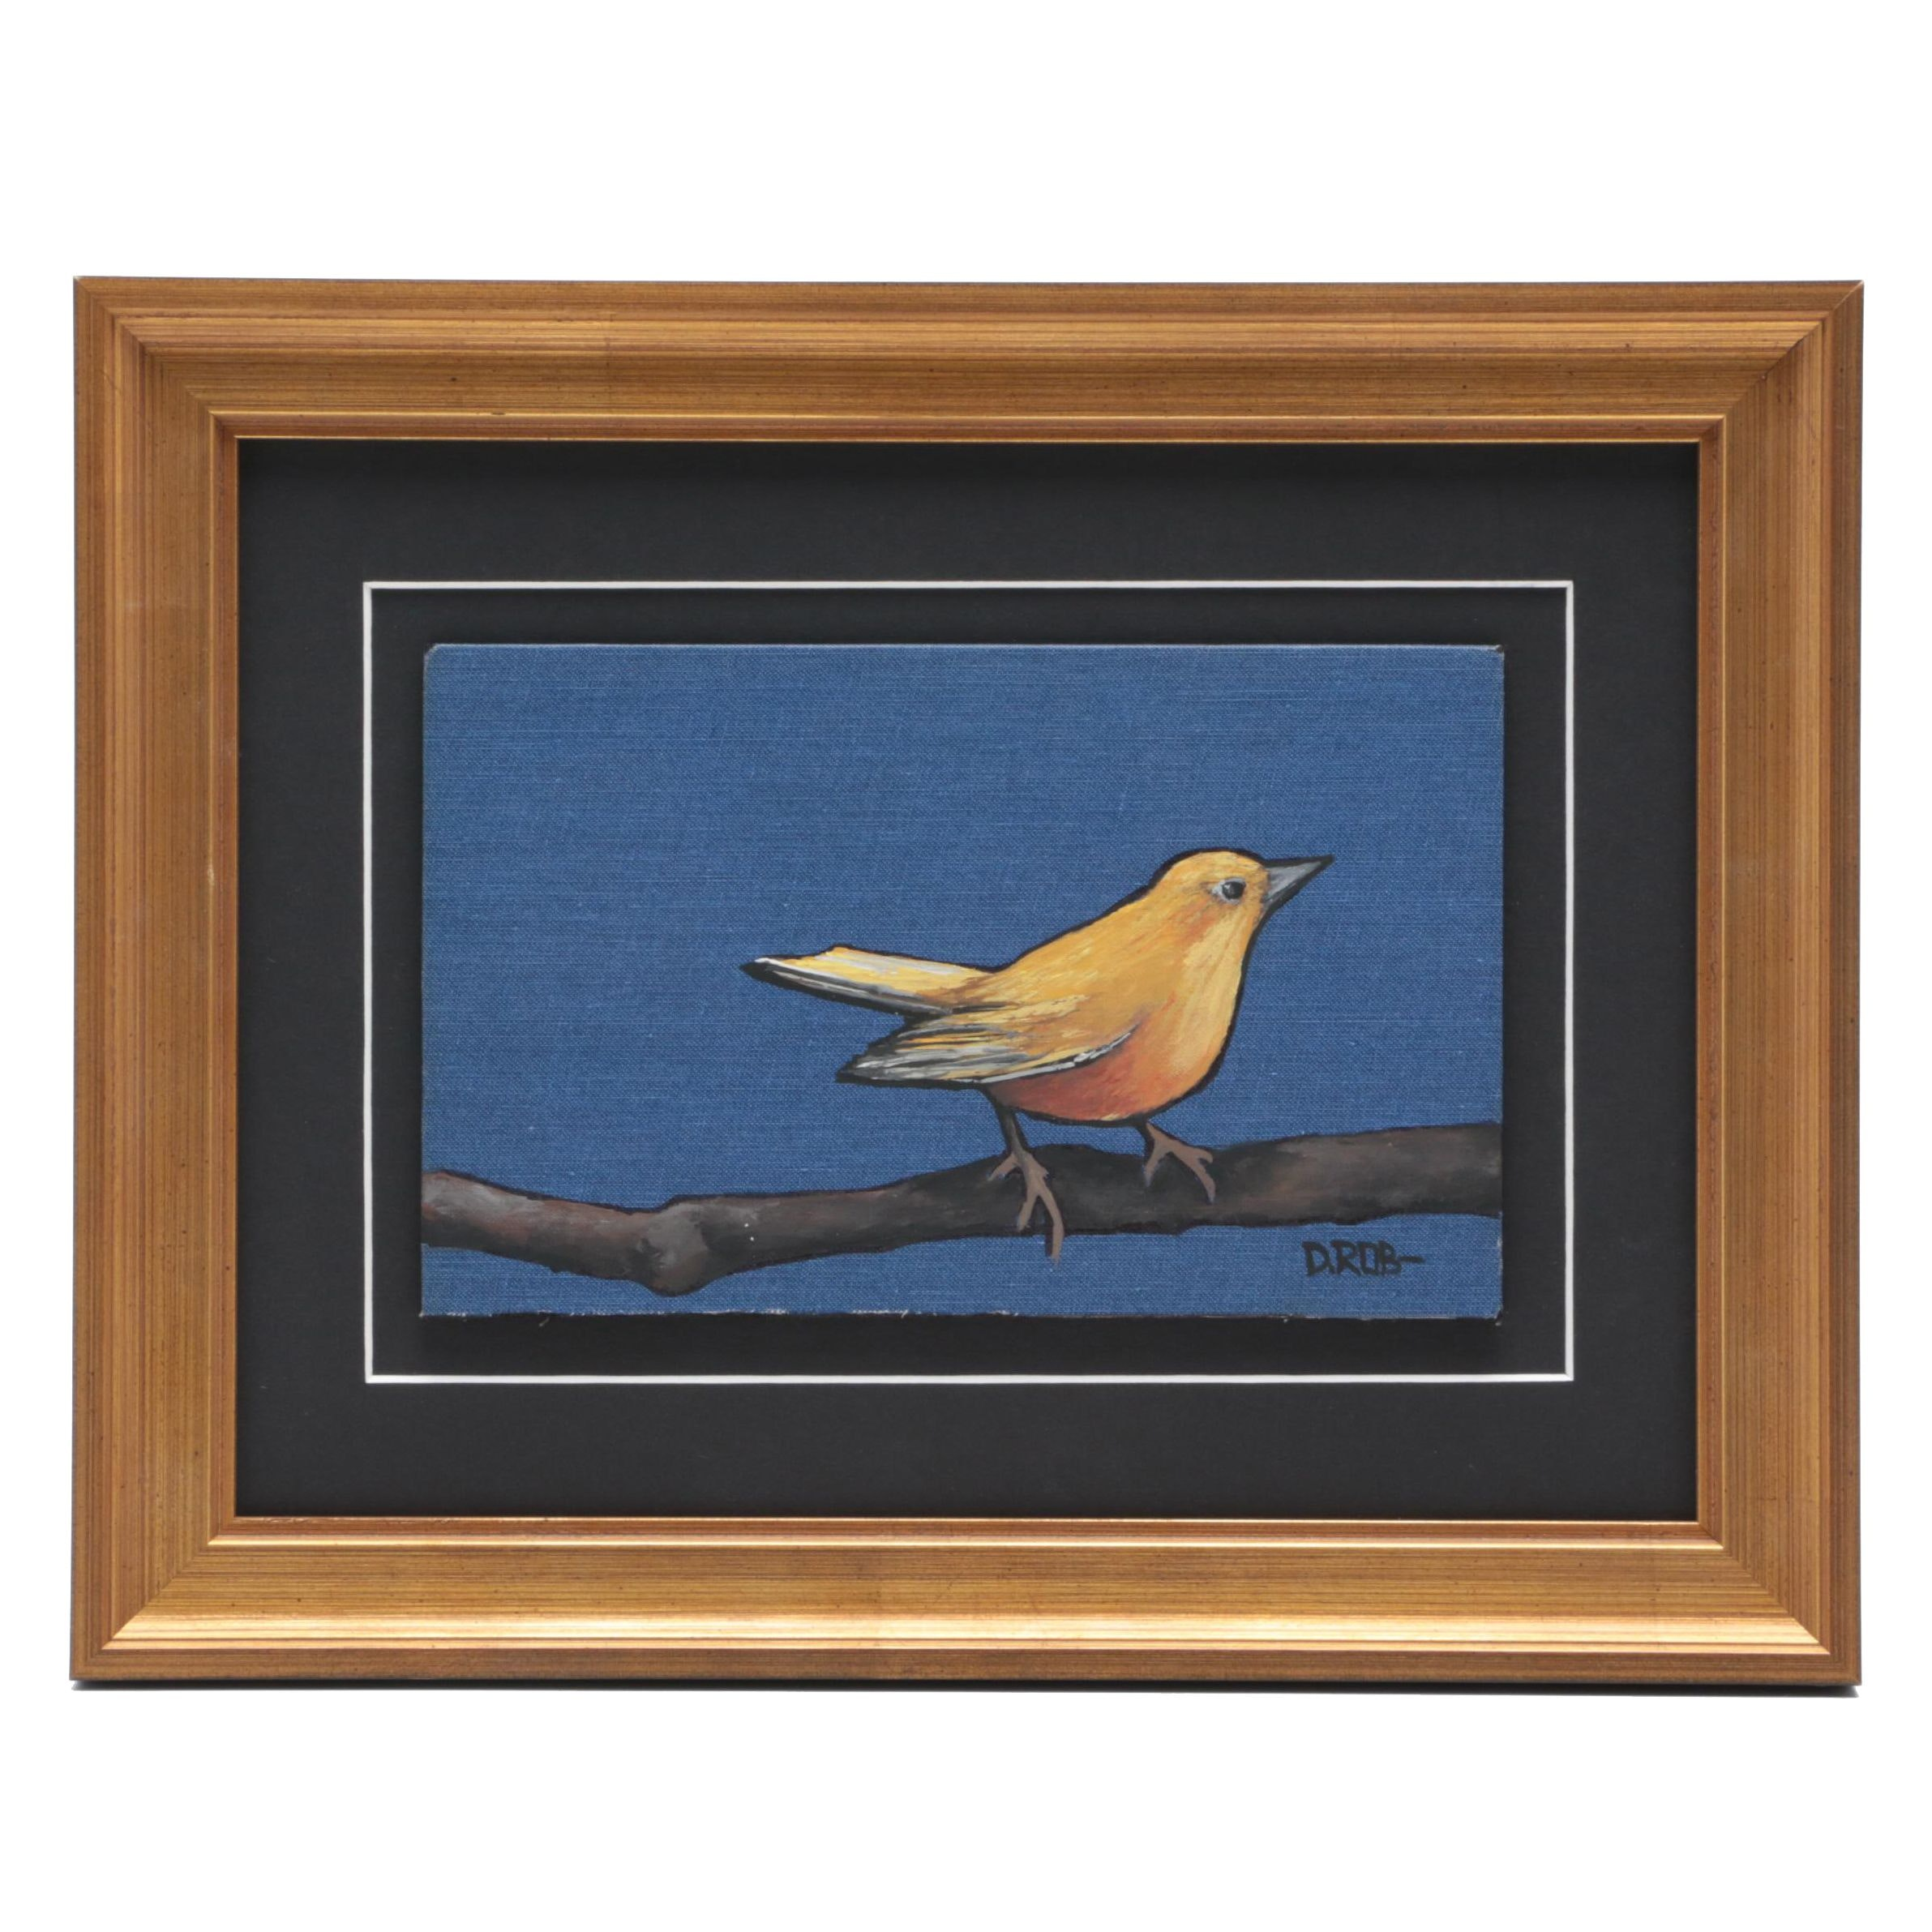 D. Rob Oil Painting of Bird on Branch